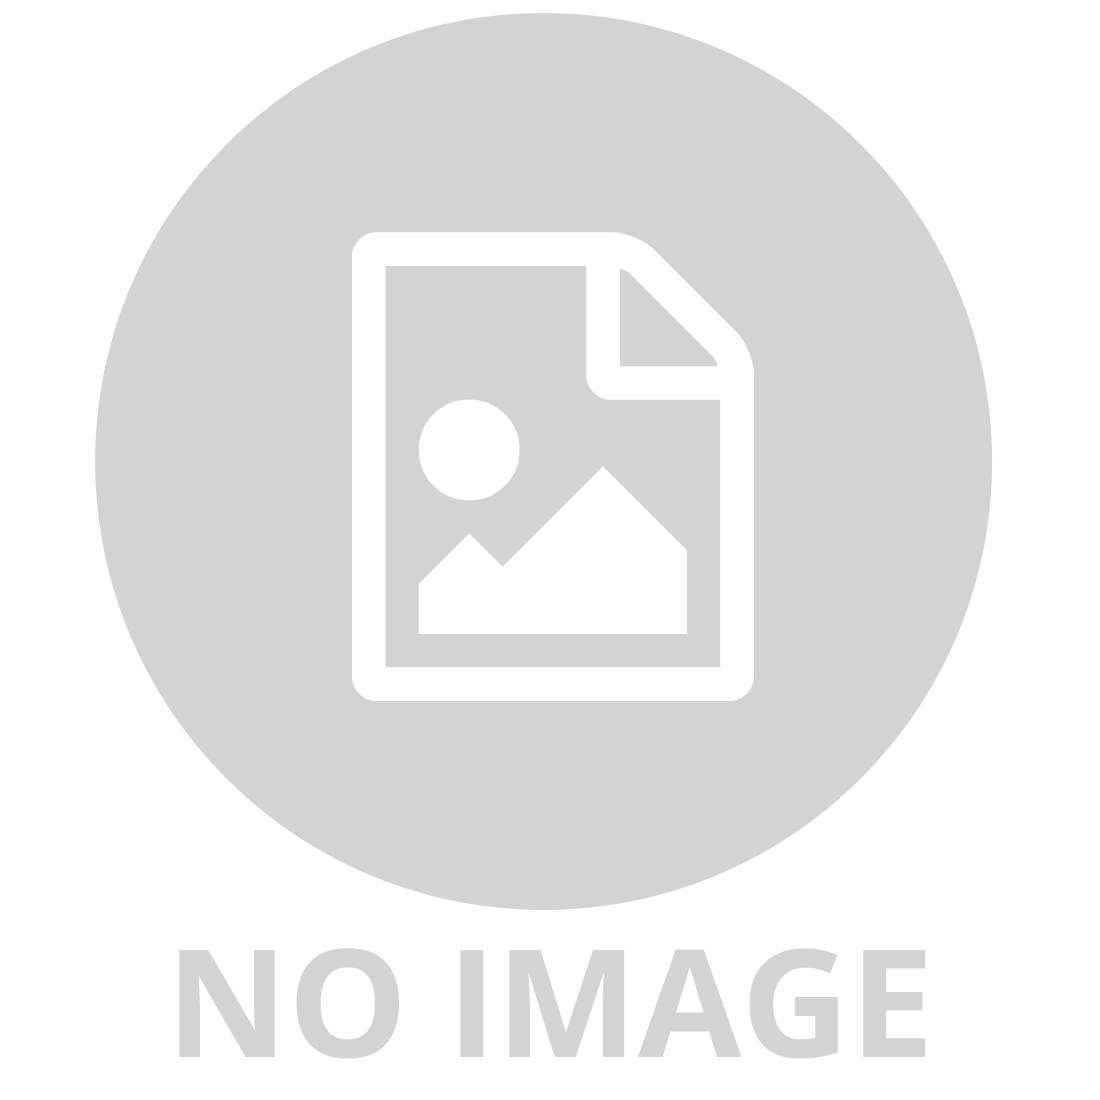 RAVENSBURGER 500PC LARGE FORMAT JIGSAW PUZZLE SCENIC OVERLOOK